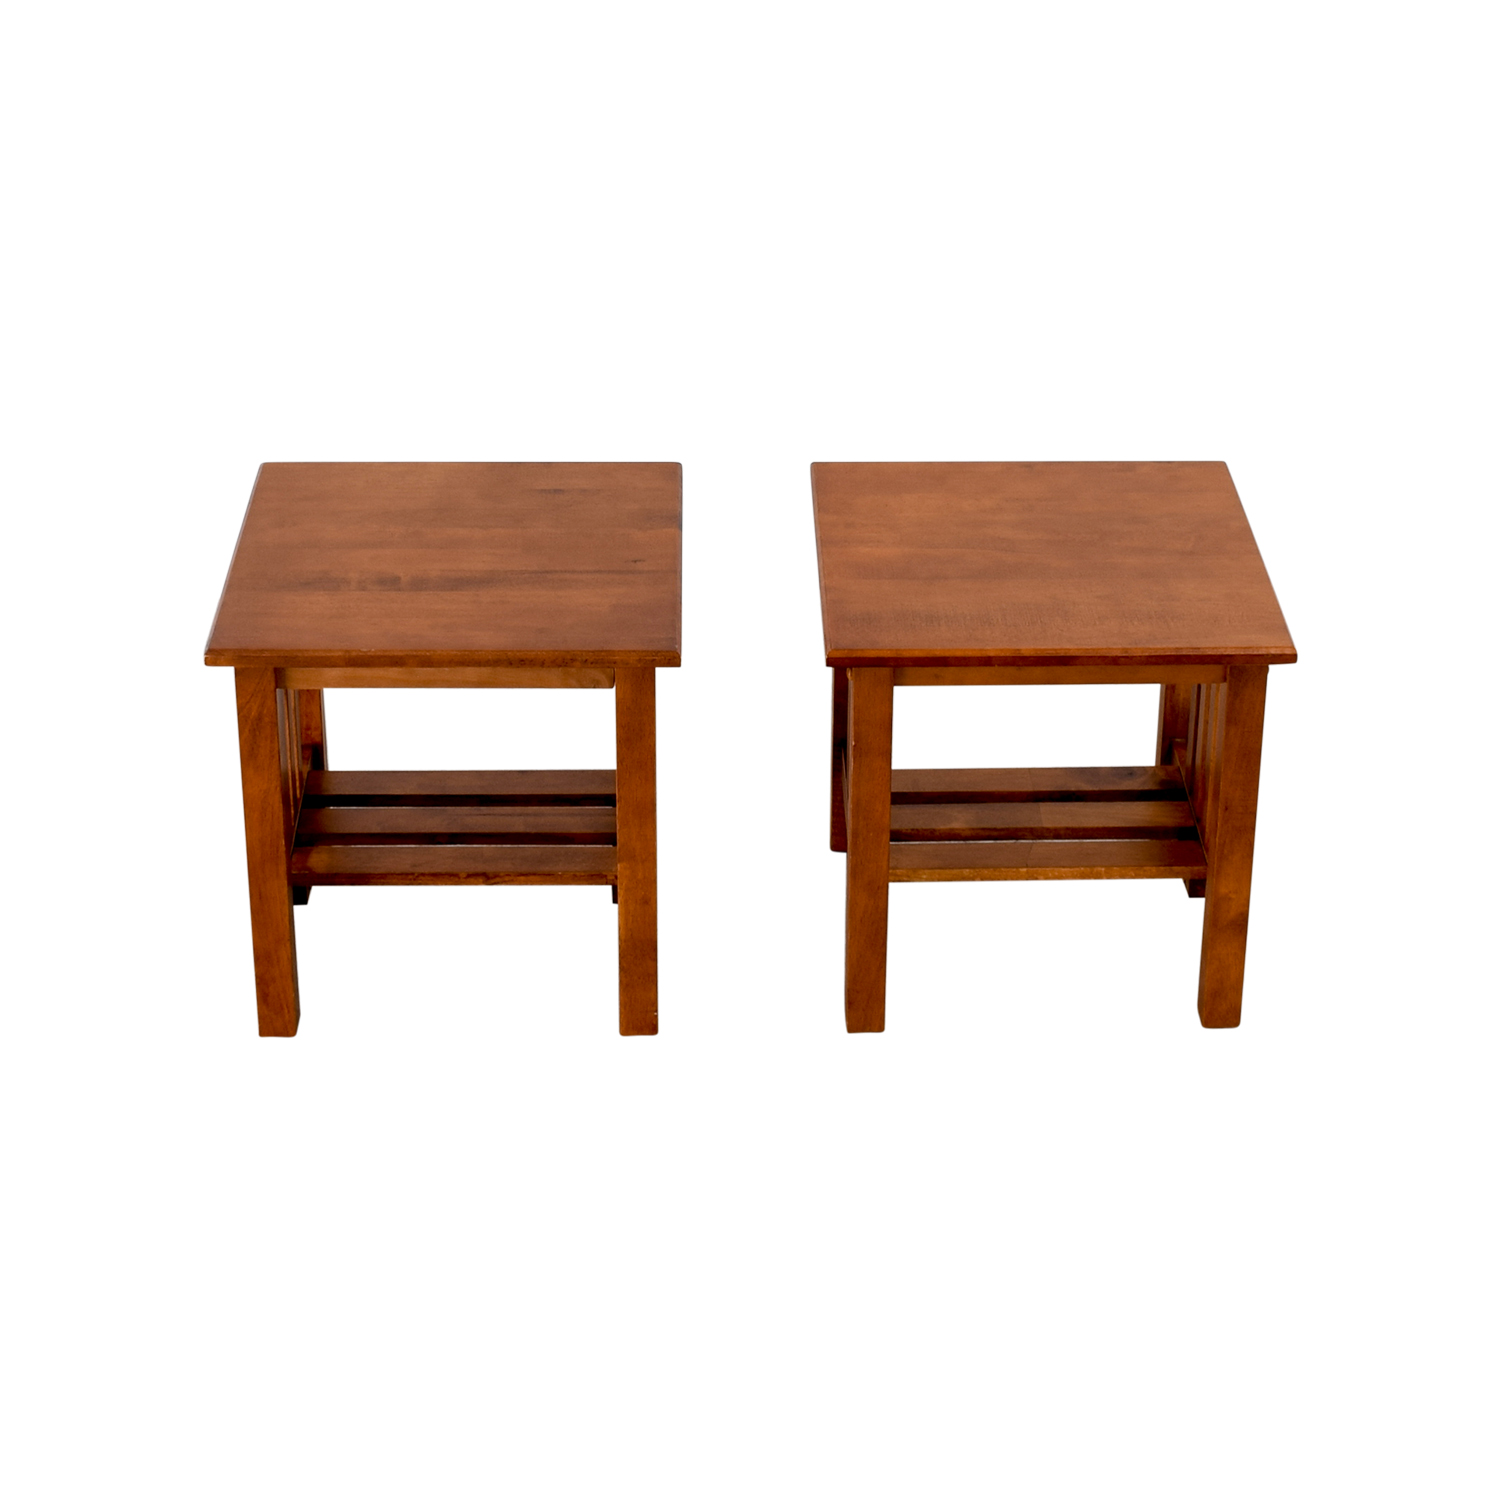 Craftsman Style Wood End Tables / Tables